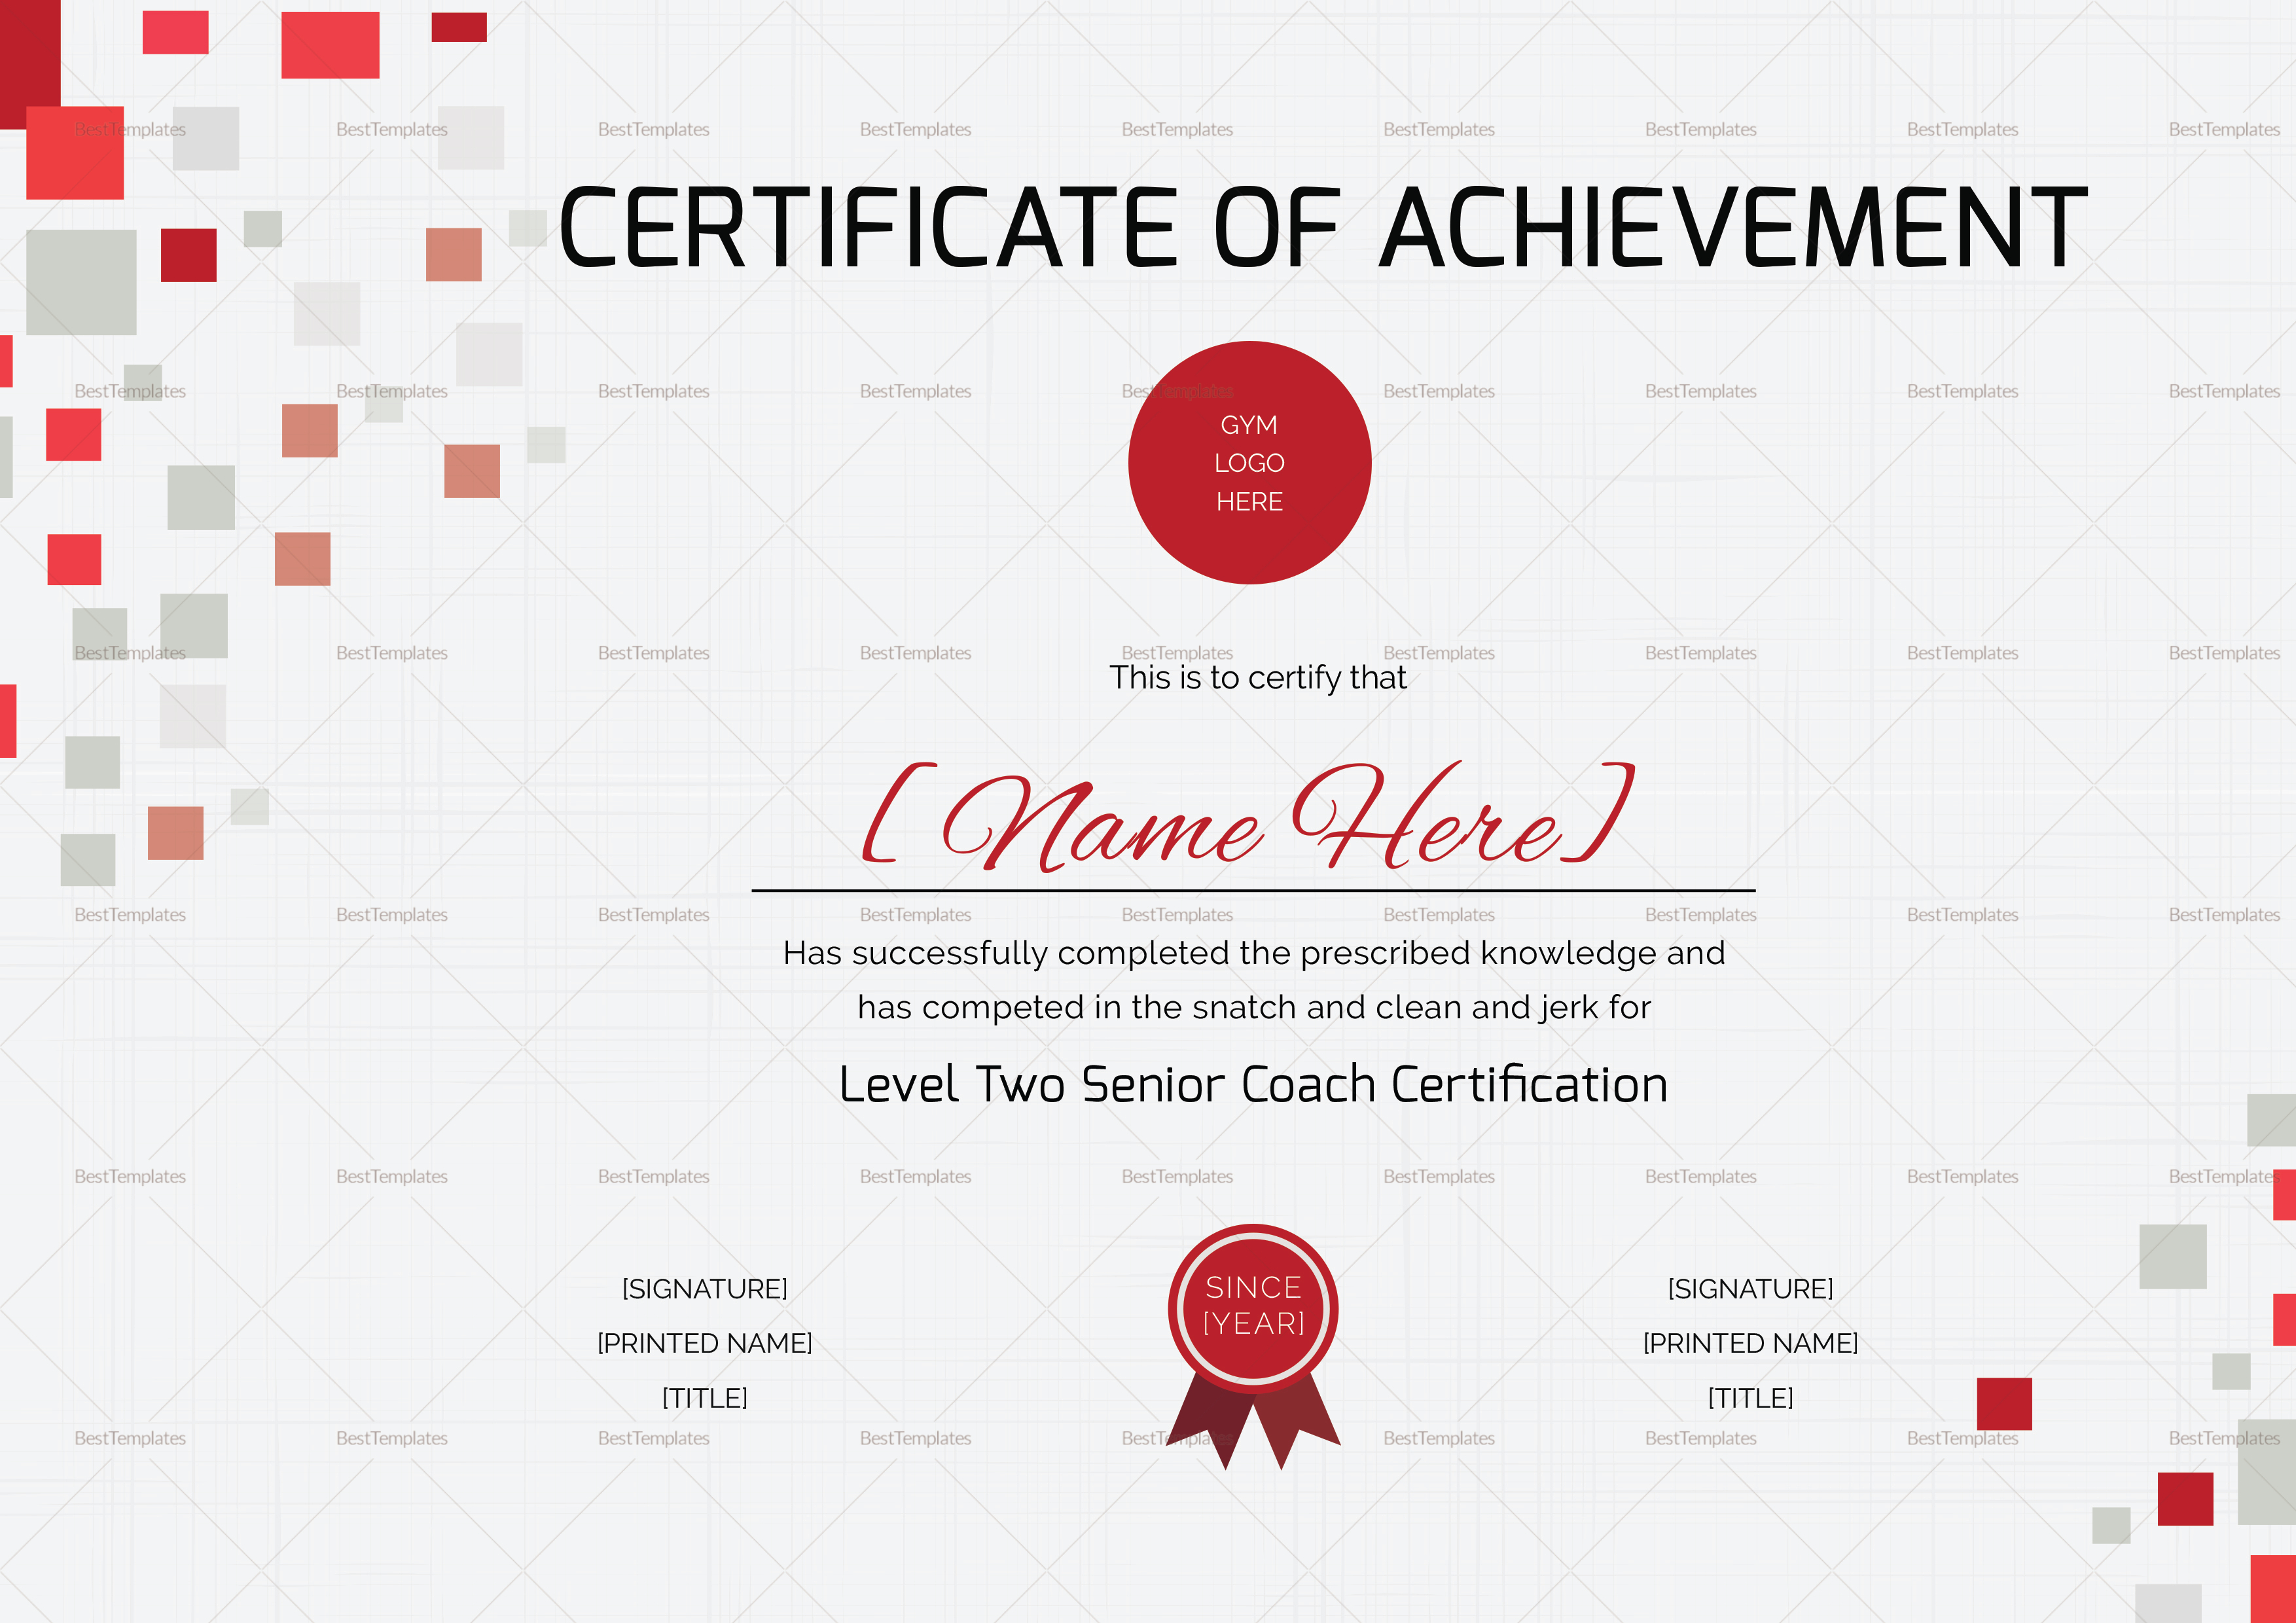 Olympic Lifting Certification Tutore